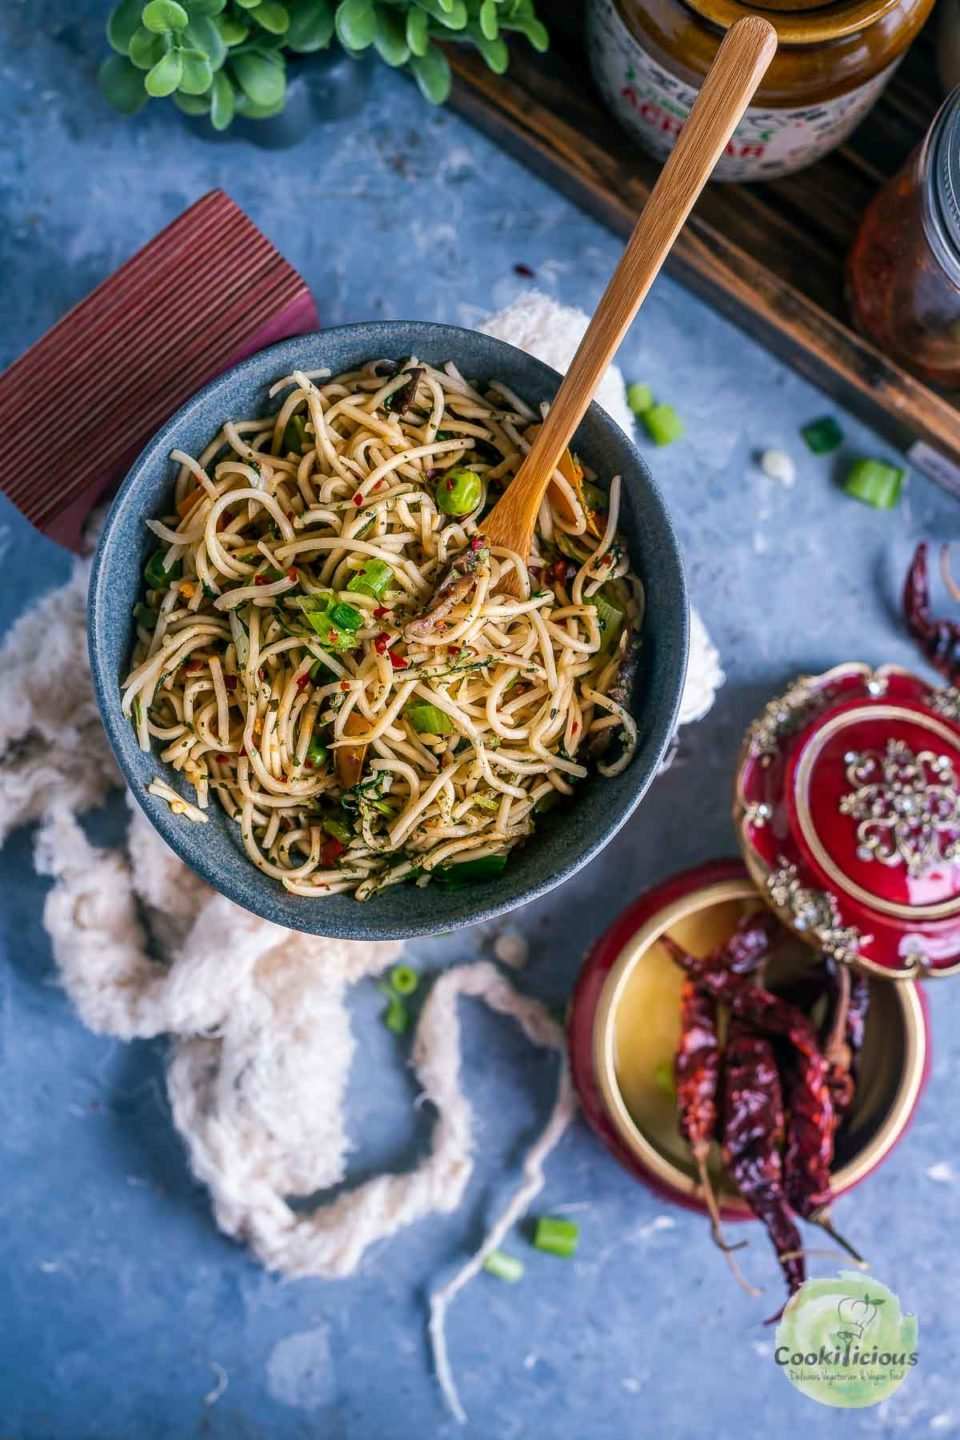 Hot and Spicy Noodles/ Cilantro Pot Noodles in a small round bowl with a fork in it